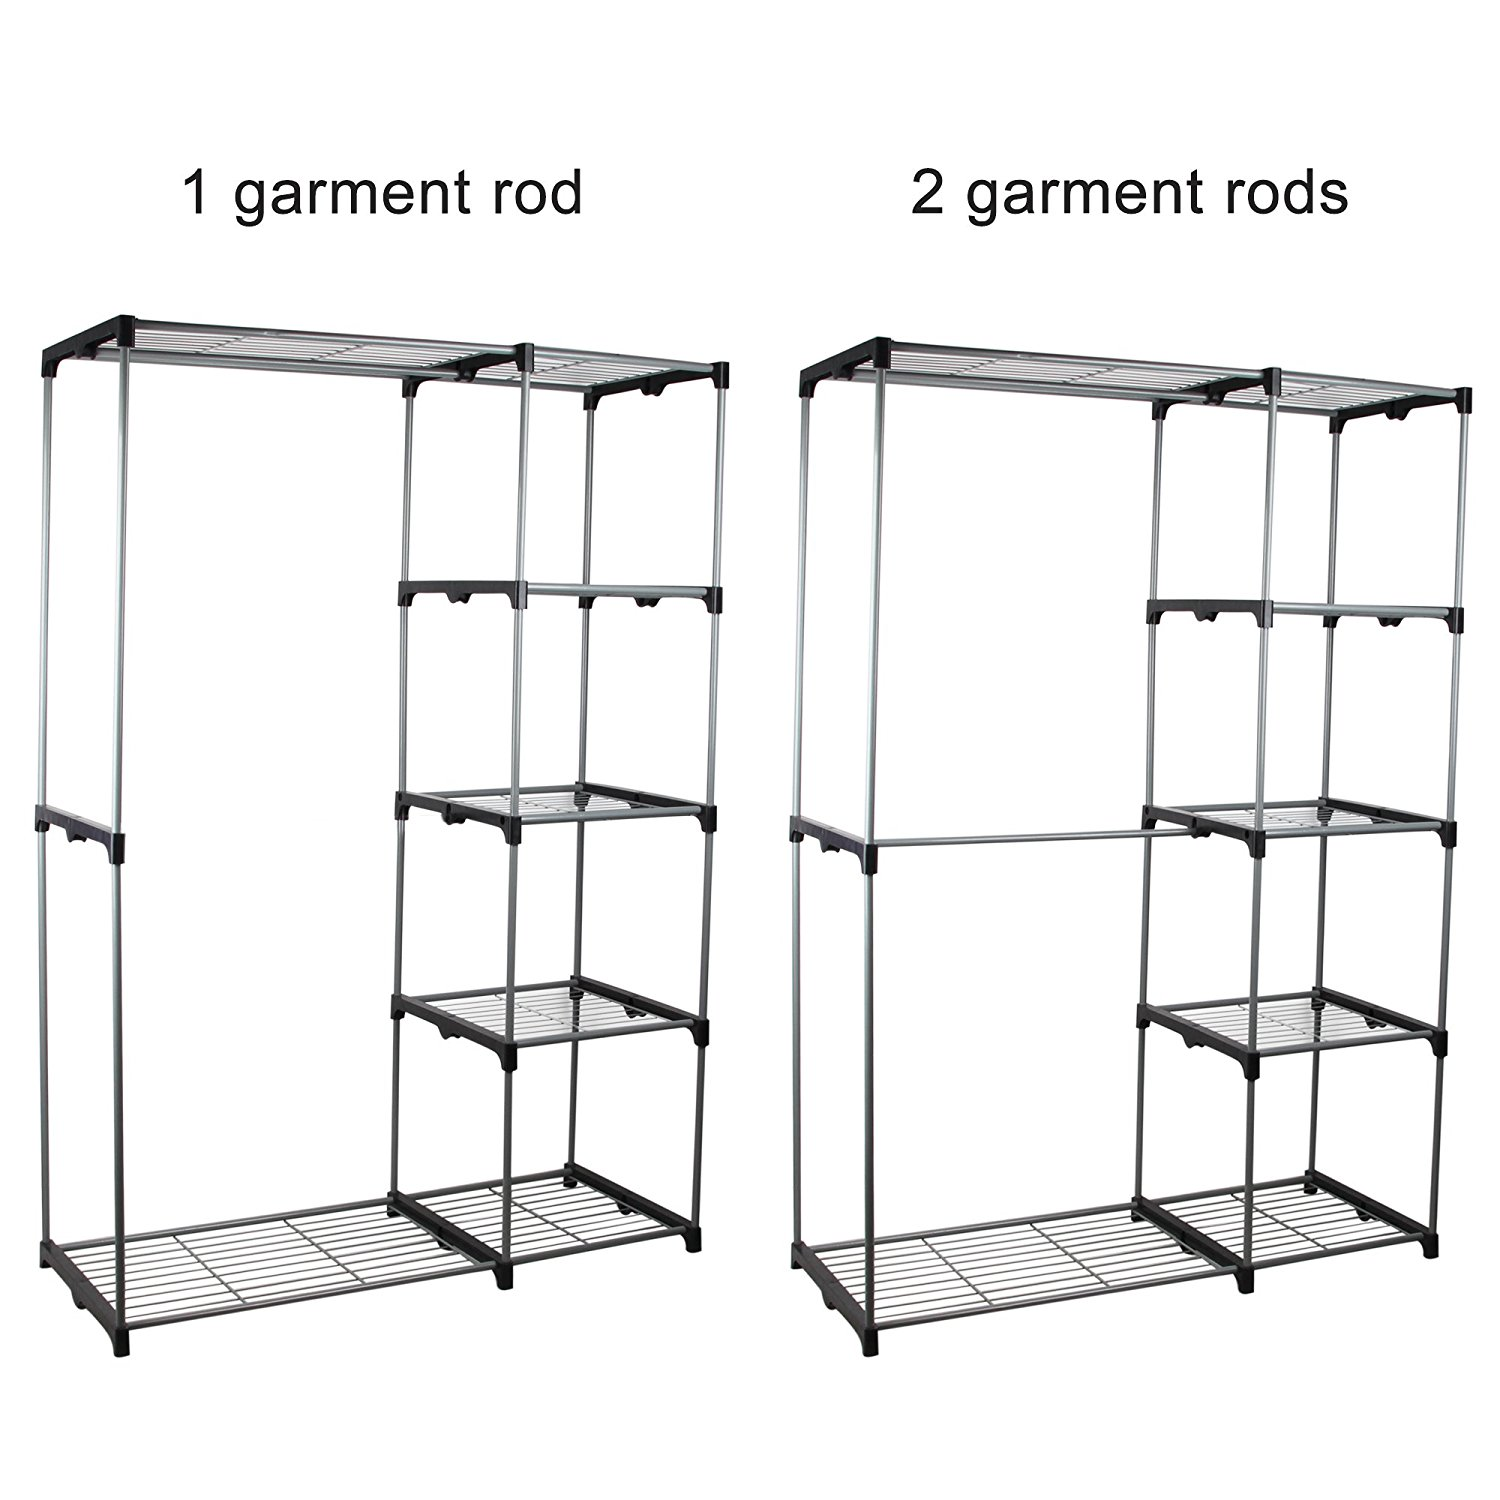 Double Rod Portable Clothes Storage Rack Freestanding Closet Wardrobe with Steel and Plastic Frame CL68 3  sc 1 st  Rakuten.com & New Shining Image: Double Rod Portable Clothes Storage Rack ...